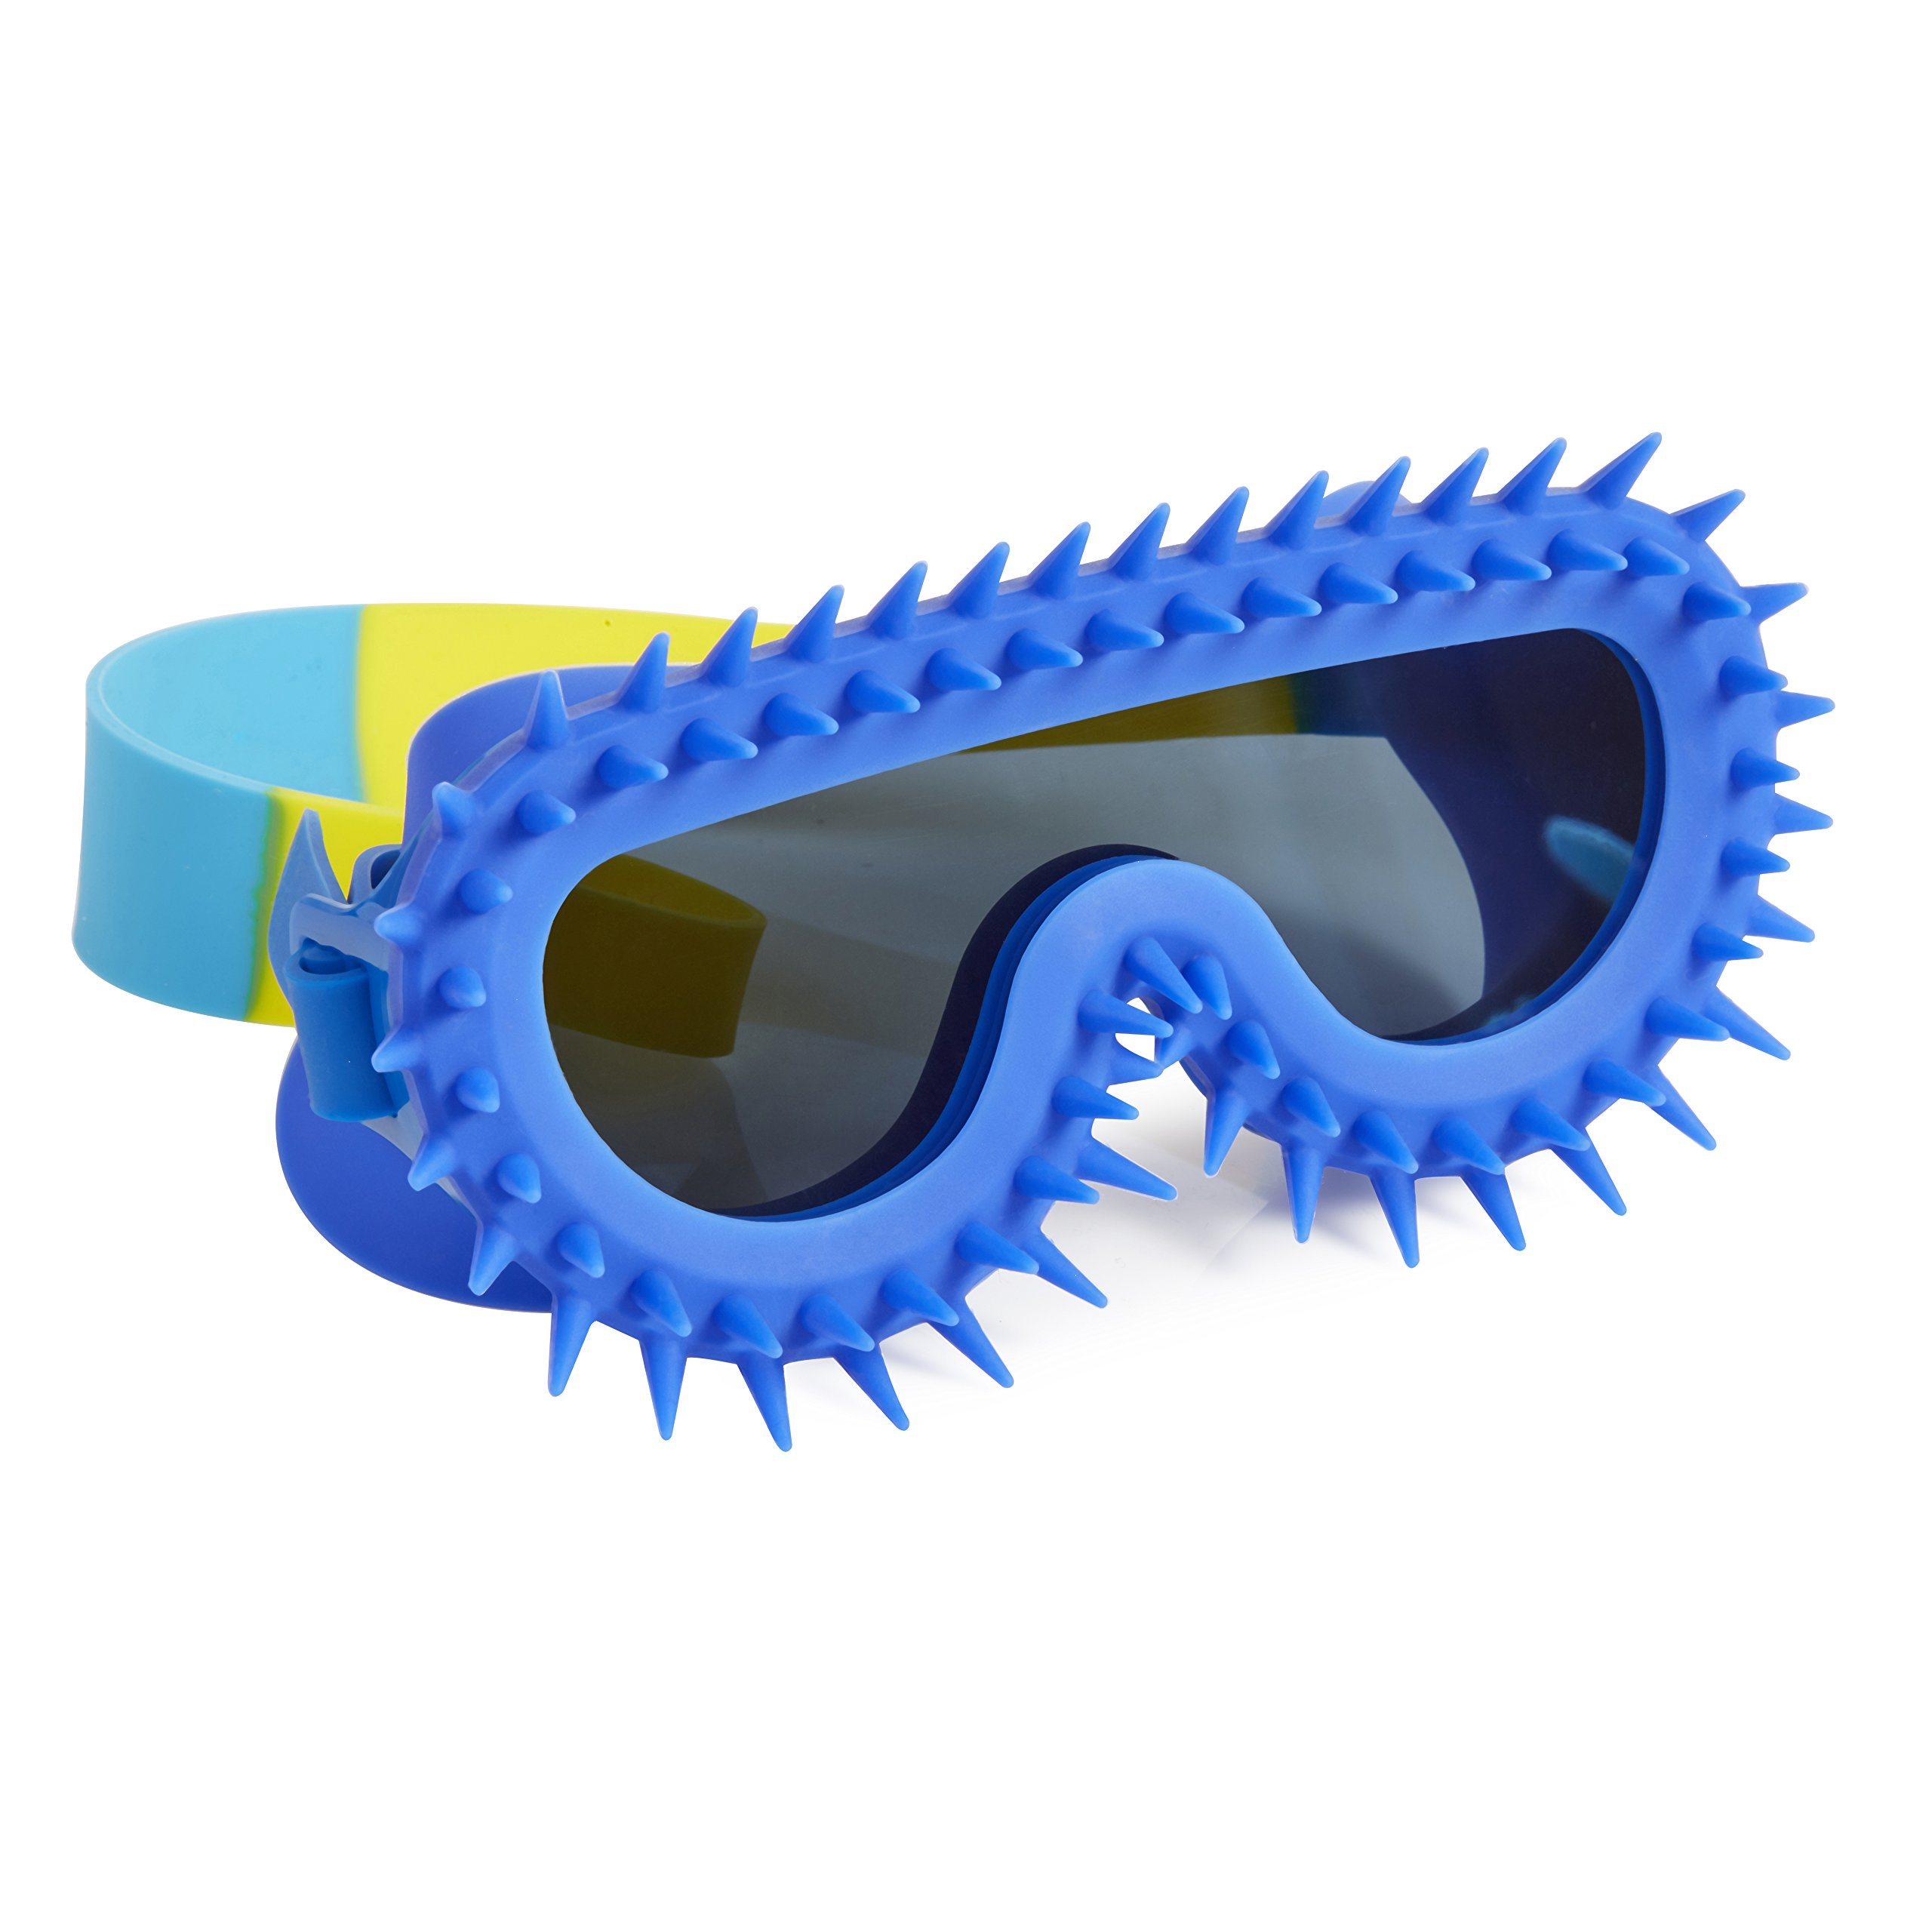 Spiky Mohawk Goggles For Kids by Bling2O - Anti Fog, No Leak, Non Slip and UV Protection - Punk Rock Royal Color Fun Water Accessory Includes Hard Case